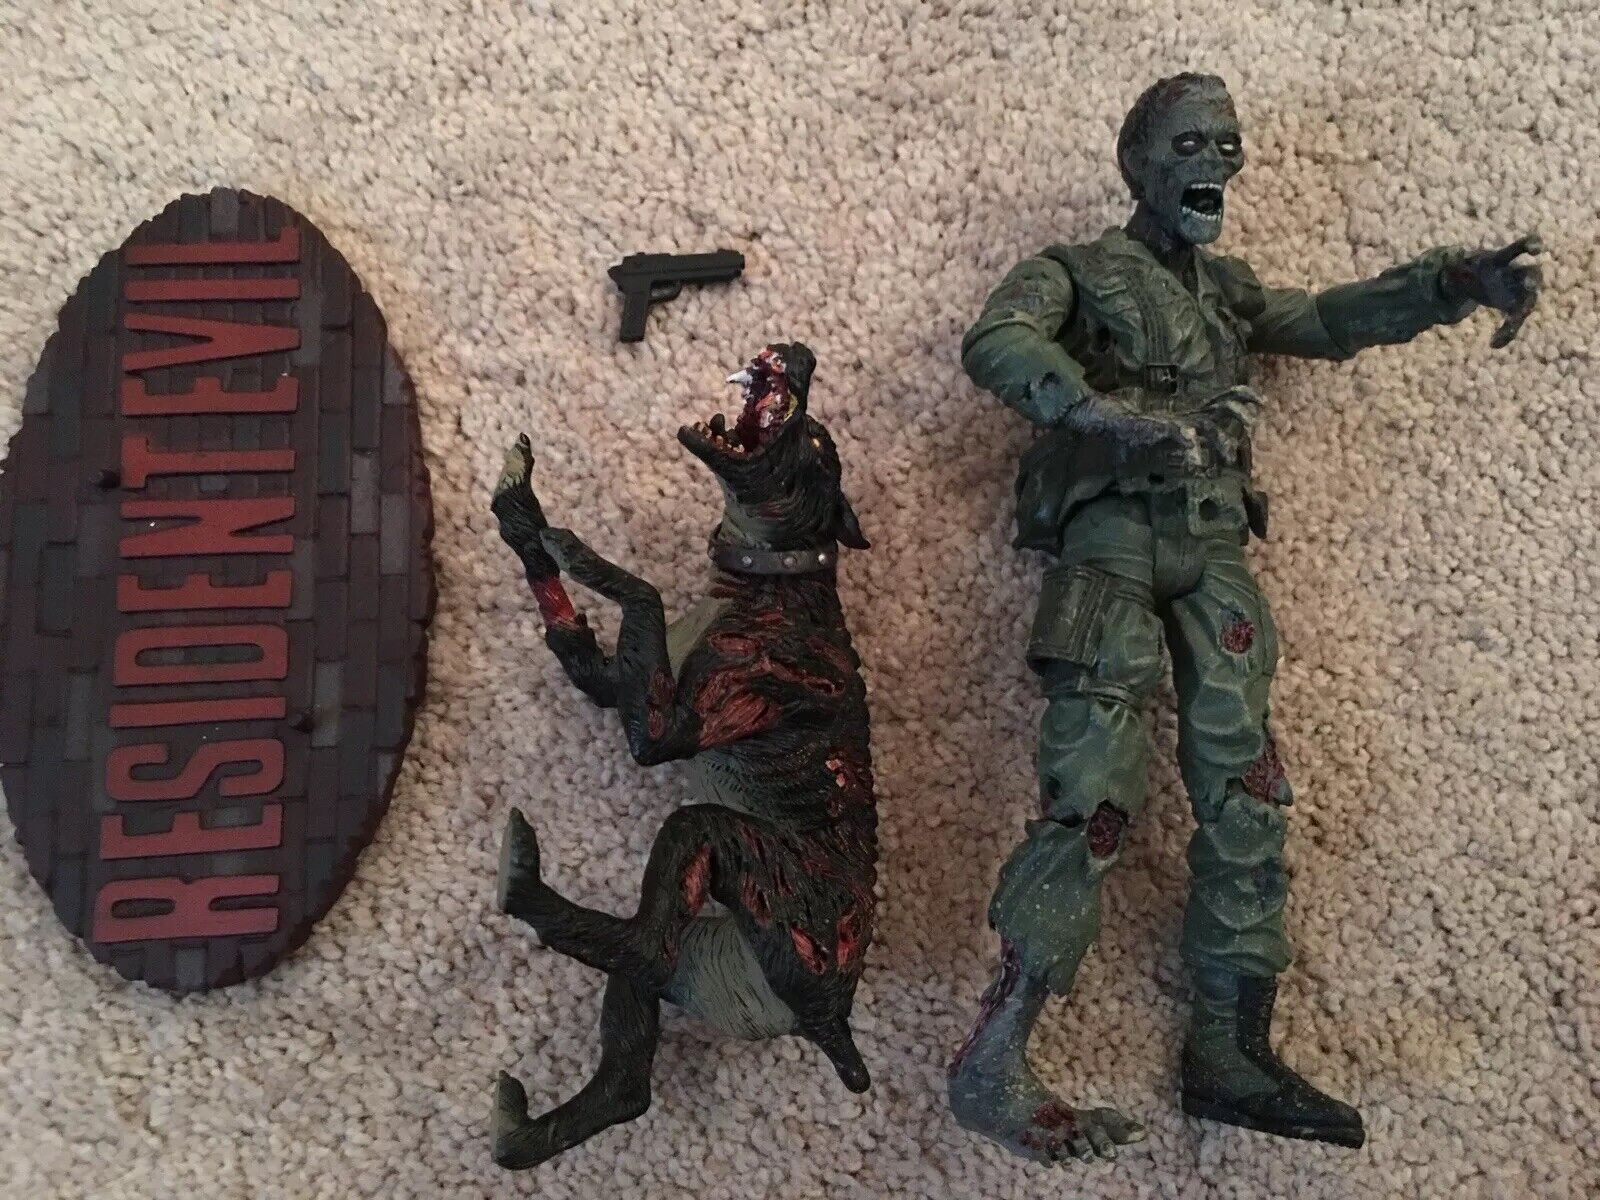 Resident evil evil evil palisades soldier zombie (without box) c9b63f